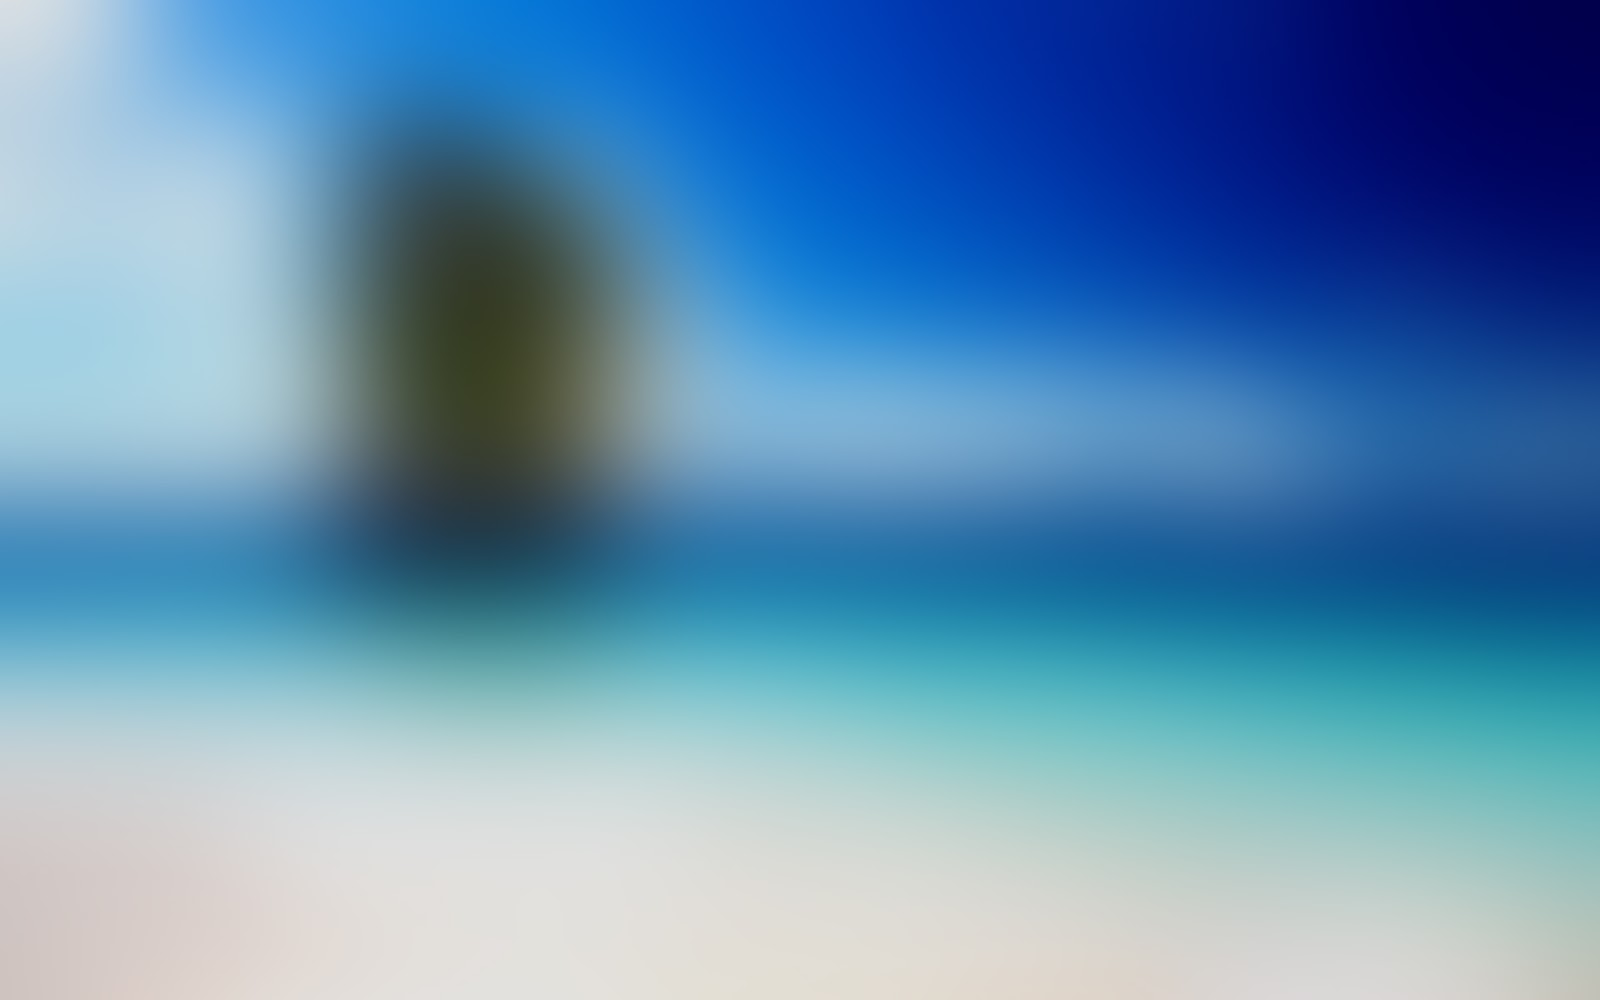 Blurred Image For Background